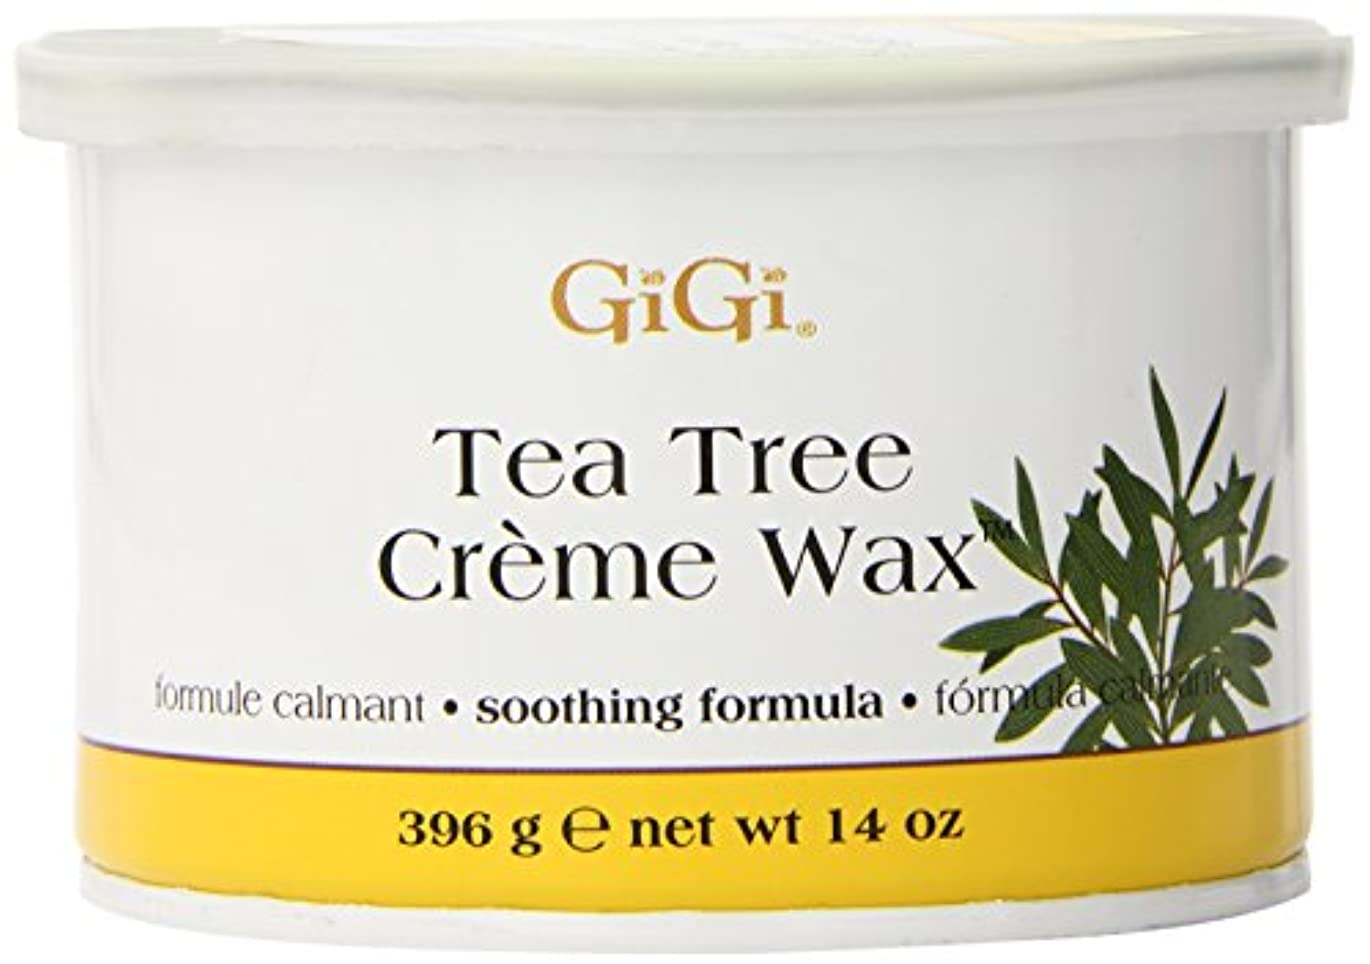 GiGi Tea Tree Cream Wax A Soothing Hair Removal Formula 396g